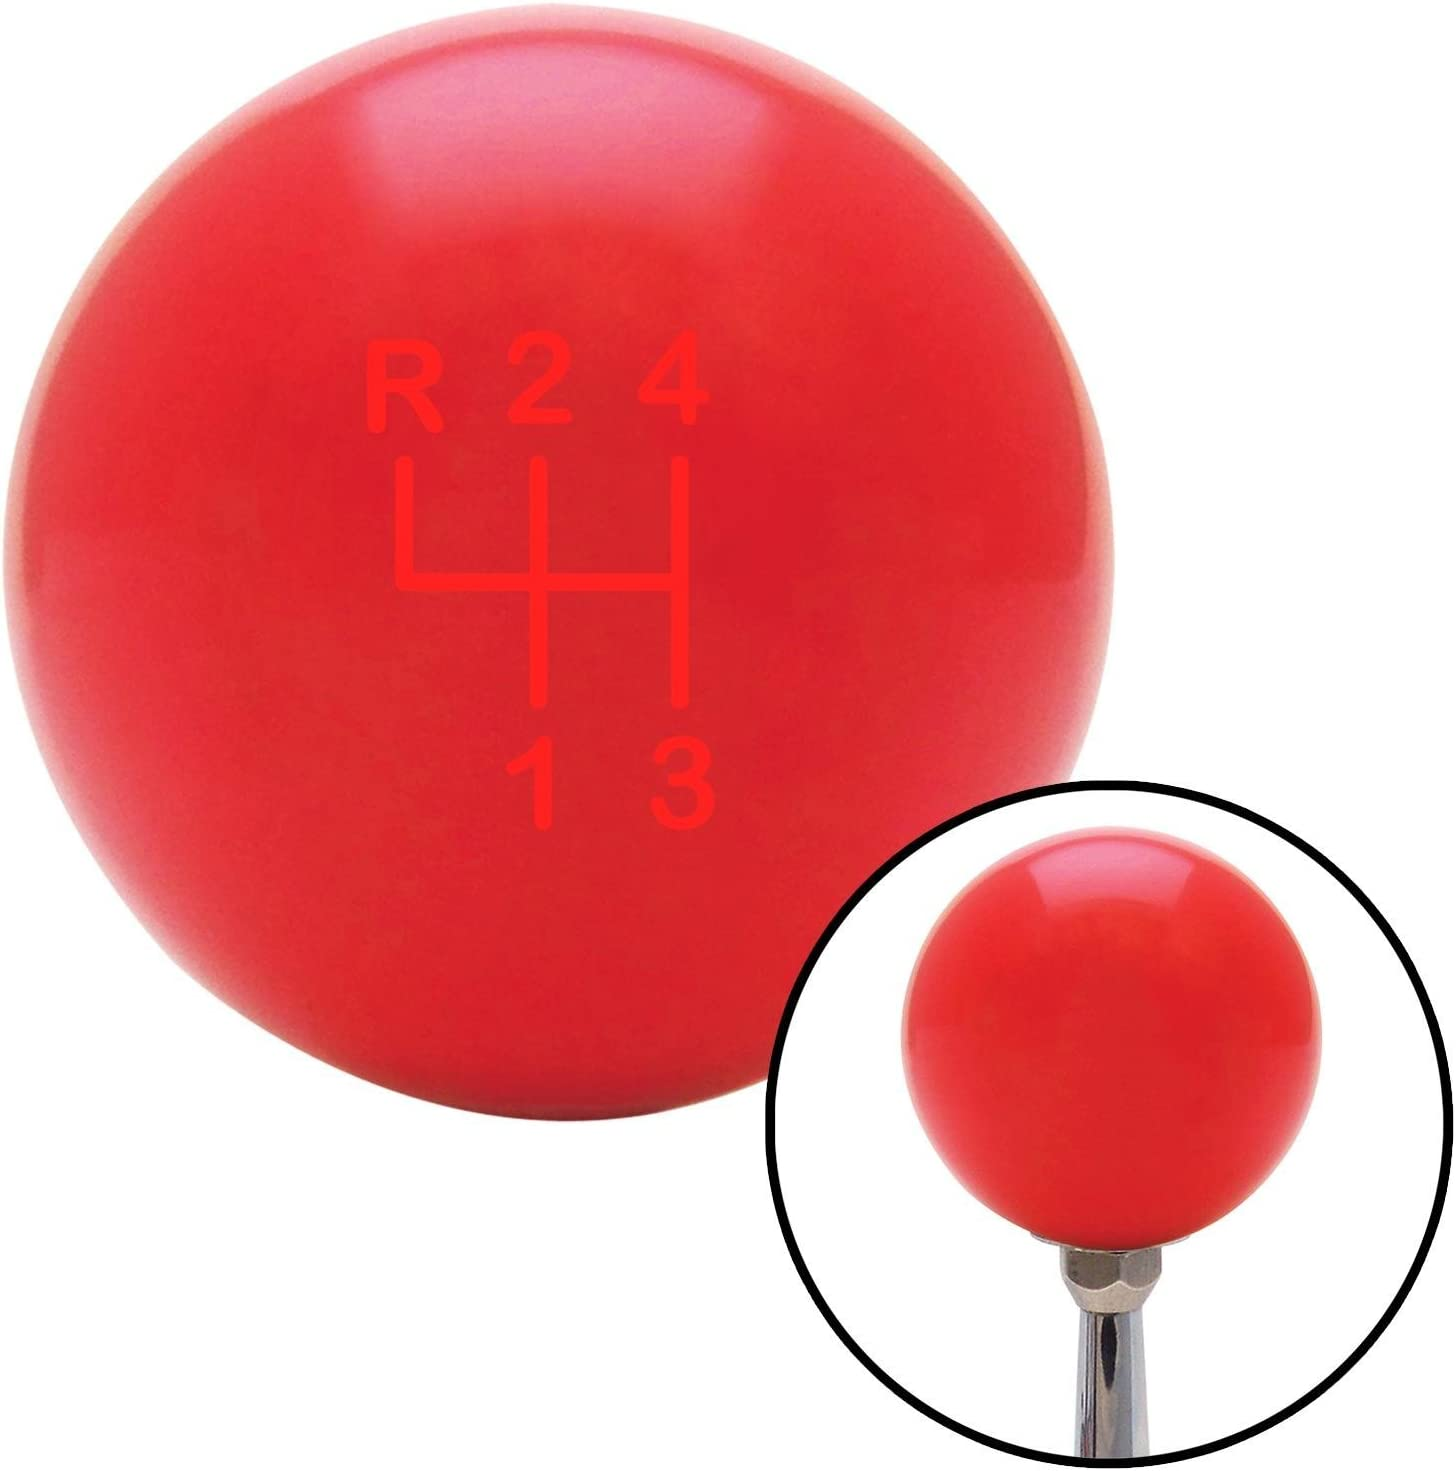 Red Shift Pattern 8n American Shifter 100461 Red Shift Knob with M16 x 1.5 Insert